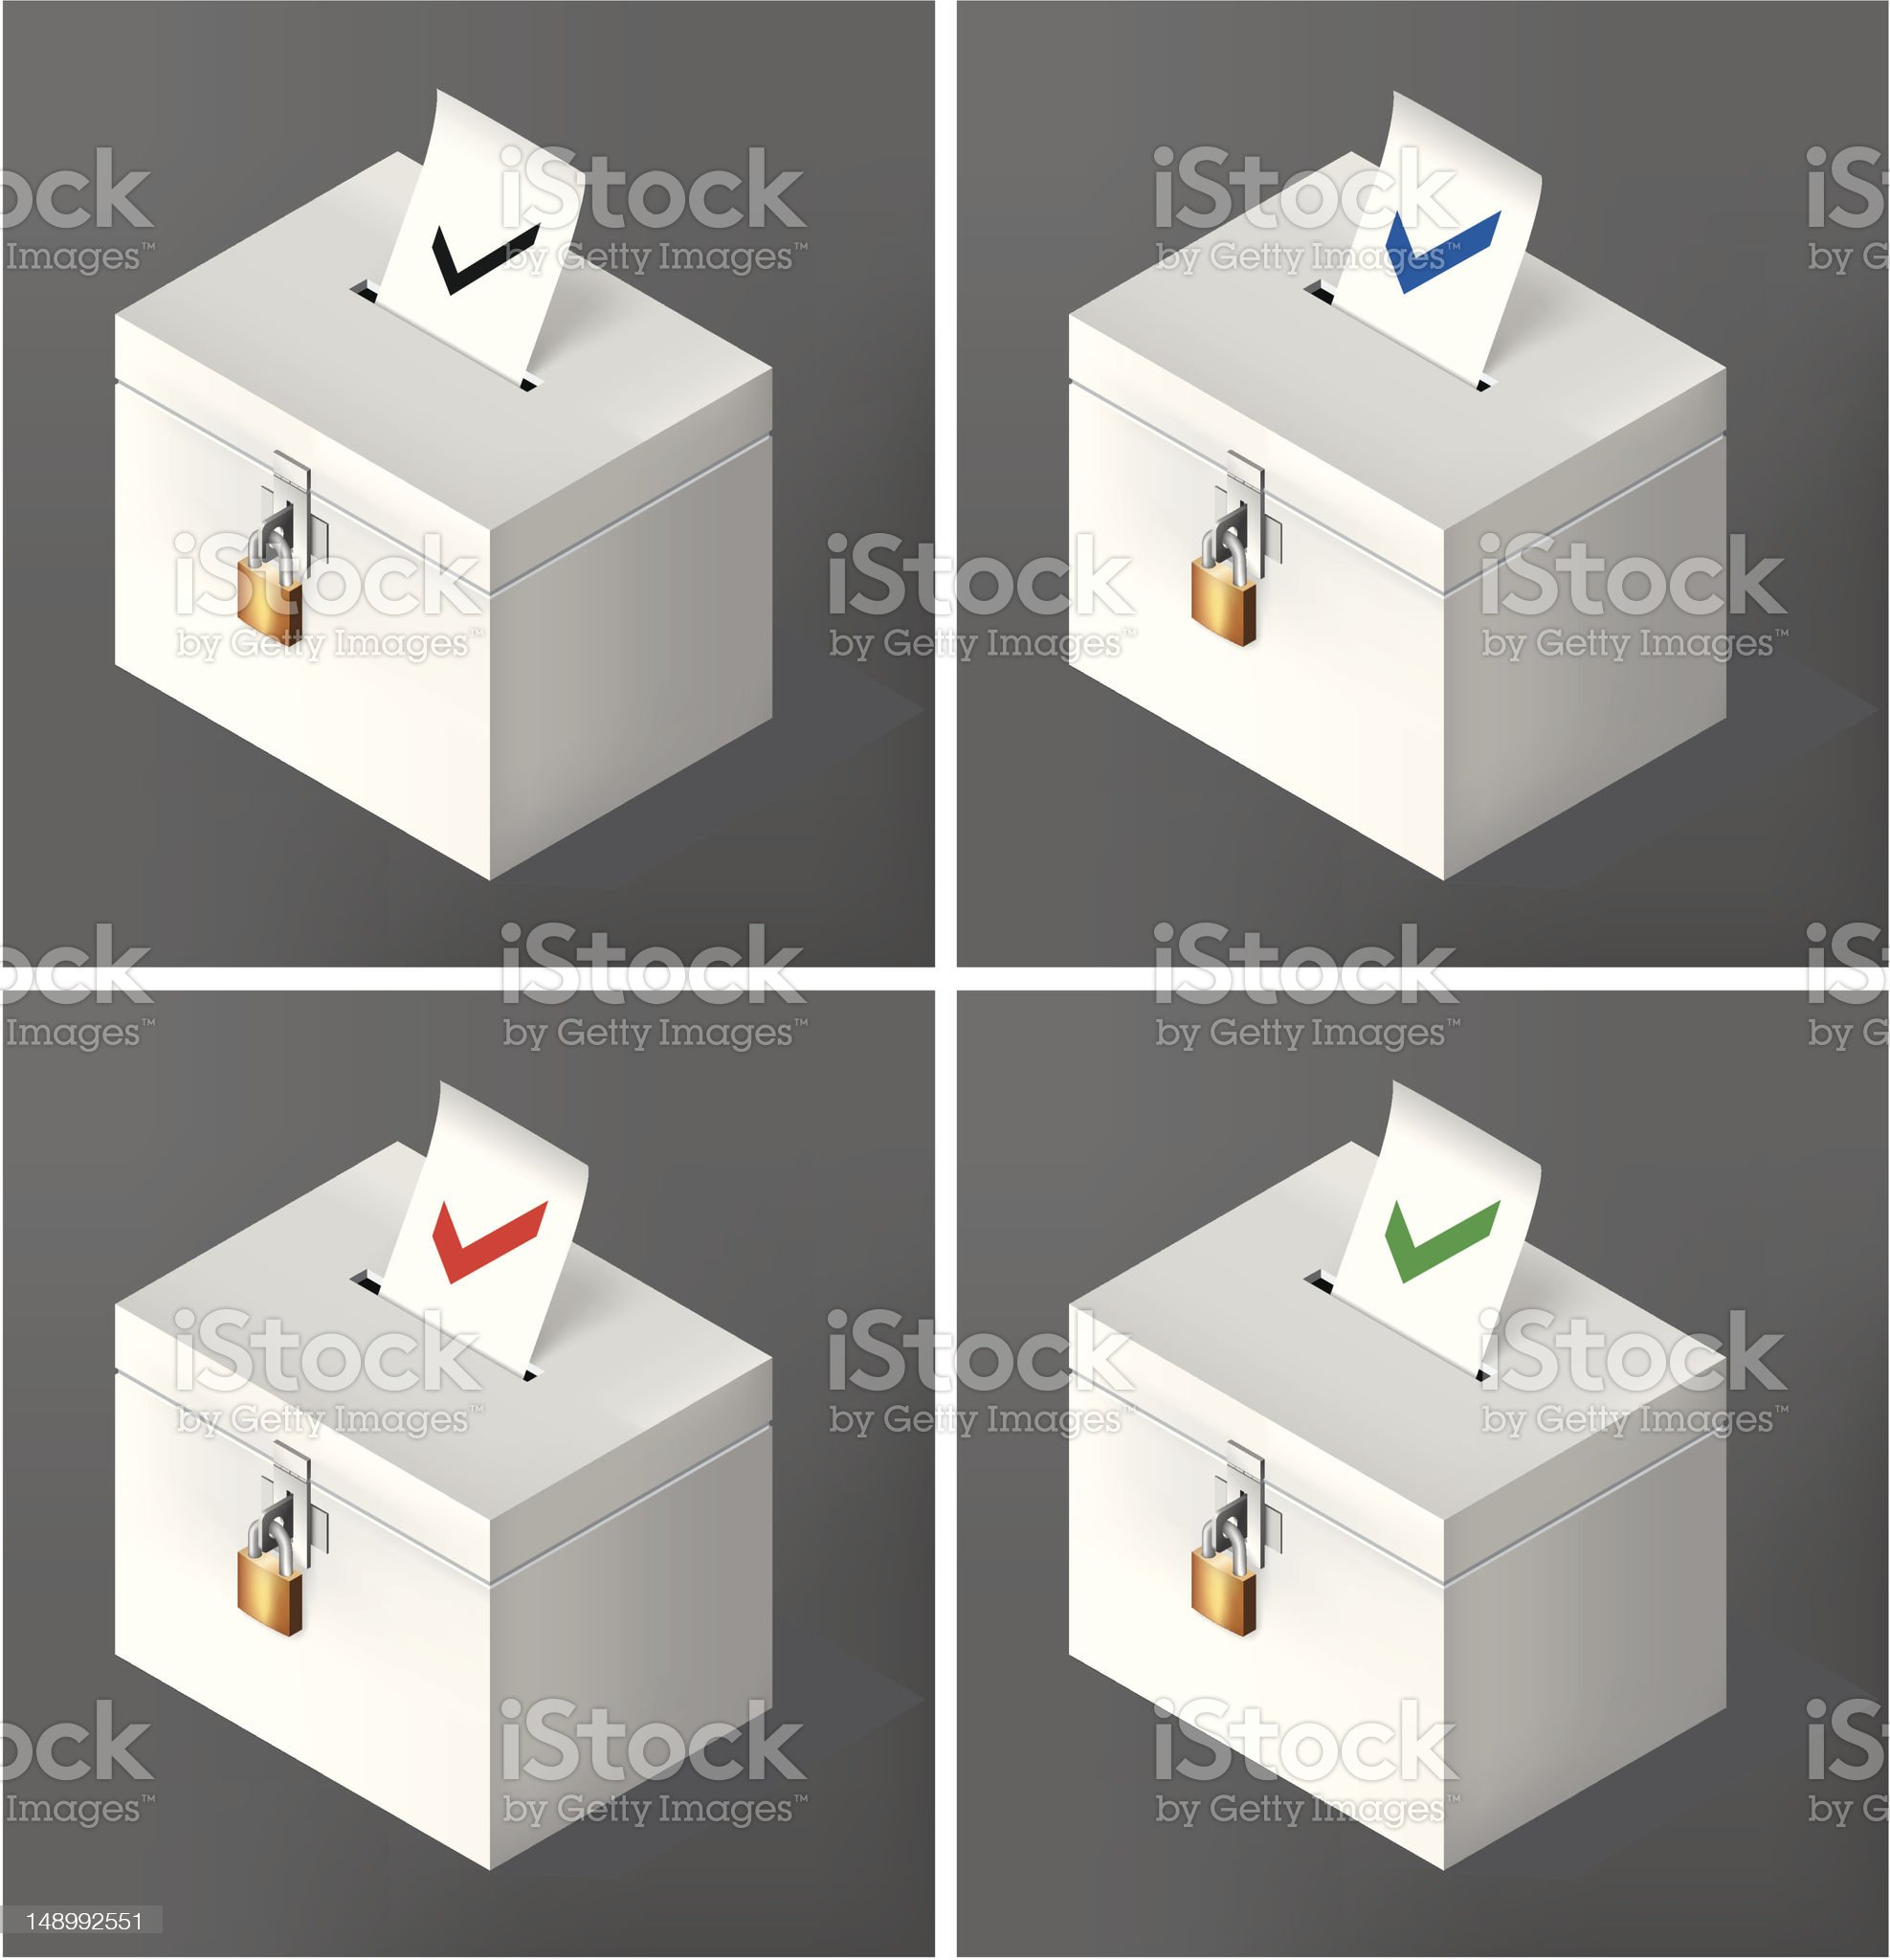 Ticked voting ballots royalty-free stock vector art